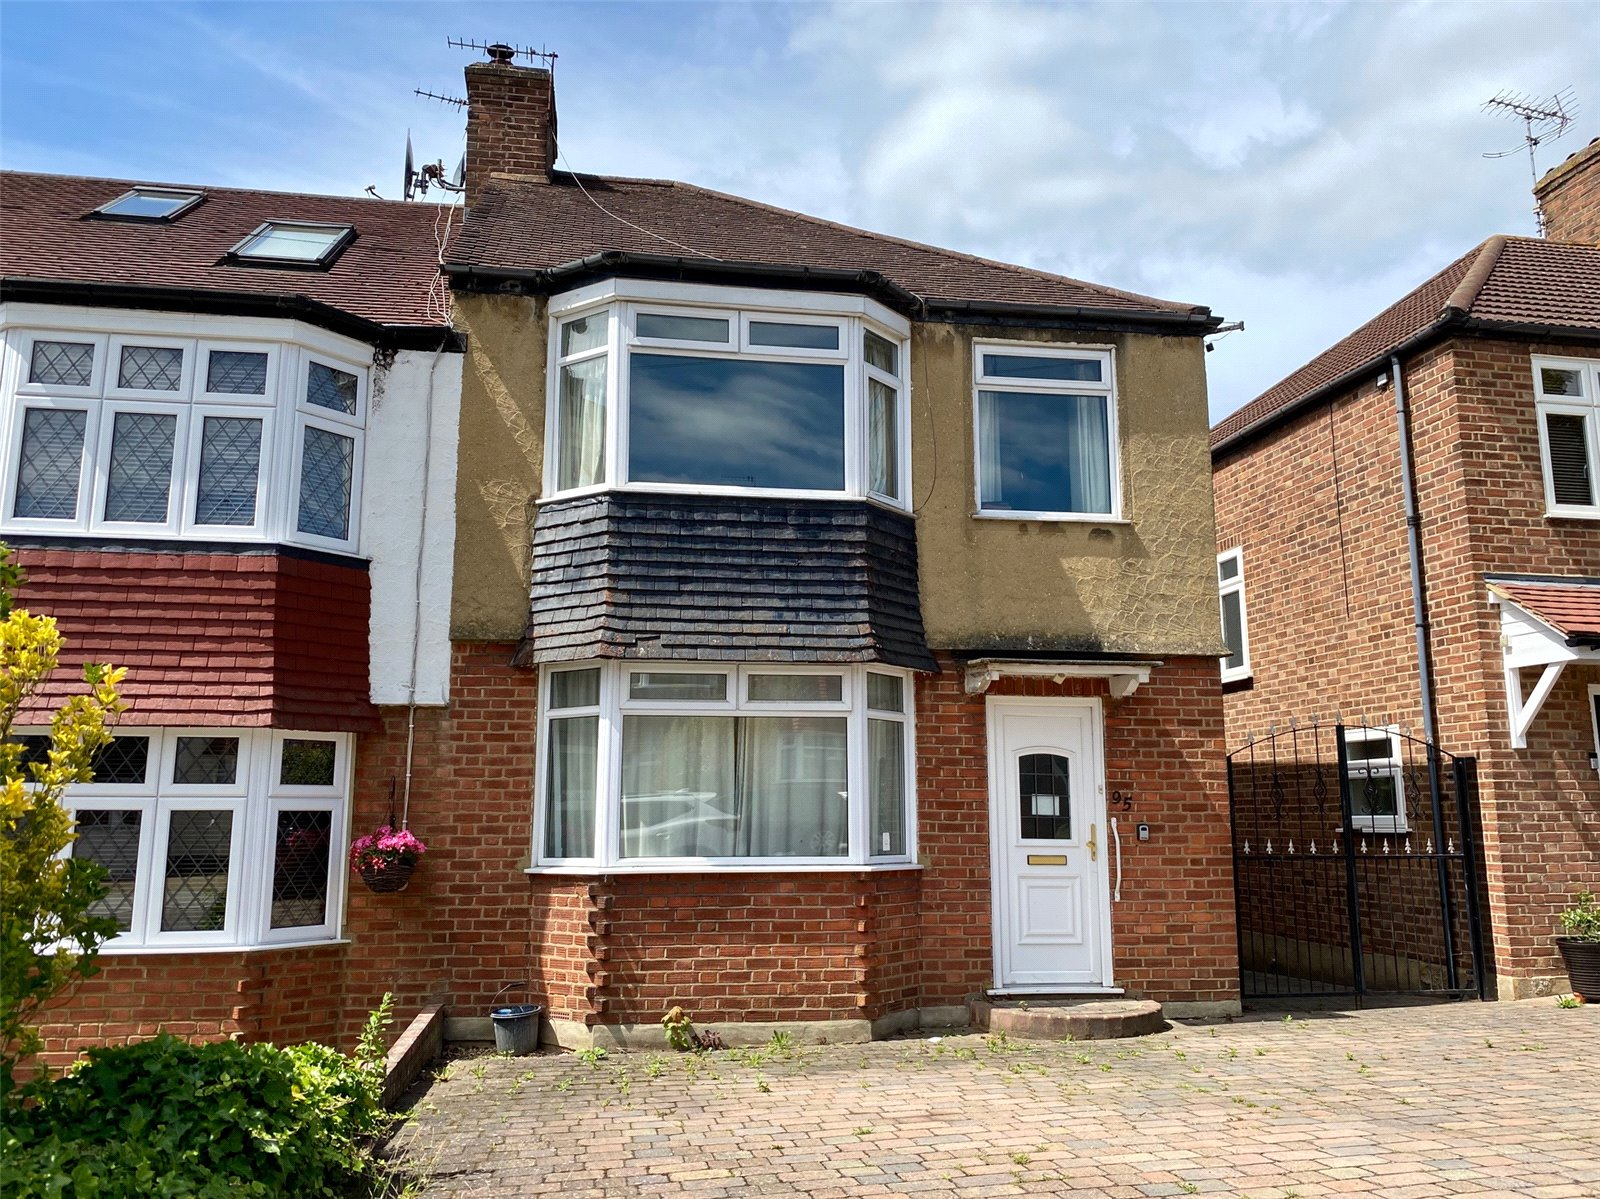 3 bed house for sale in Barnet, EN5 2BP 0